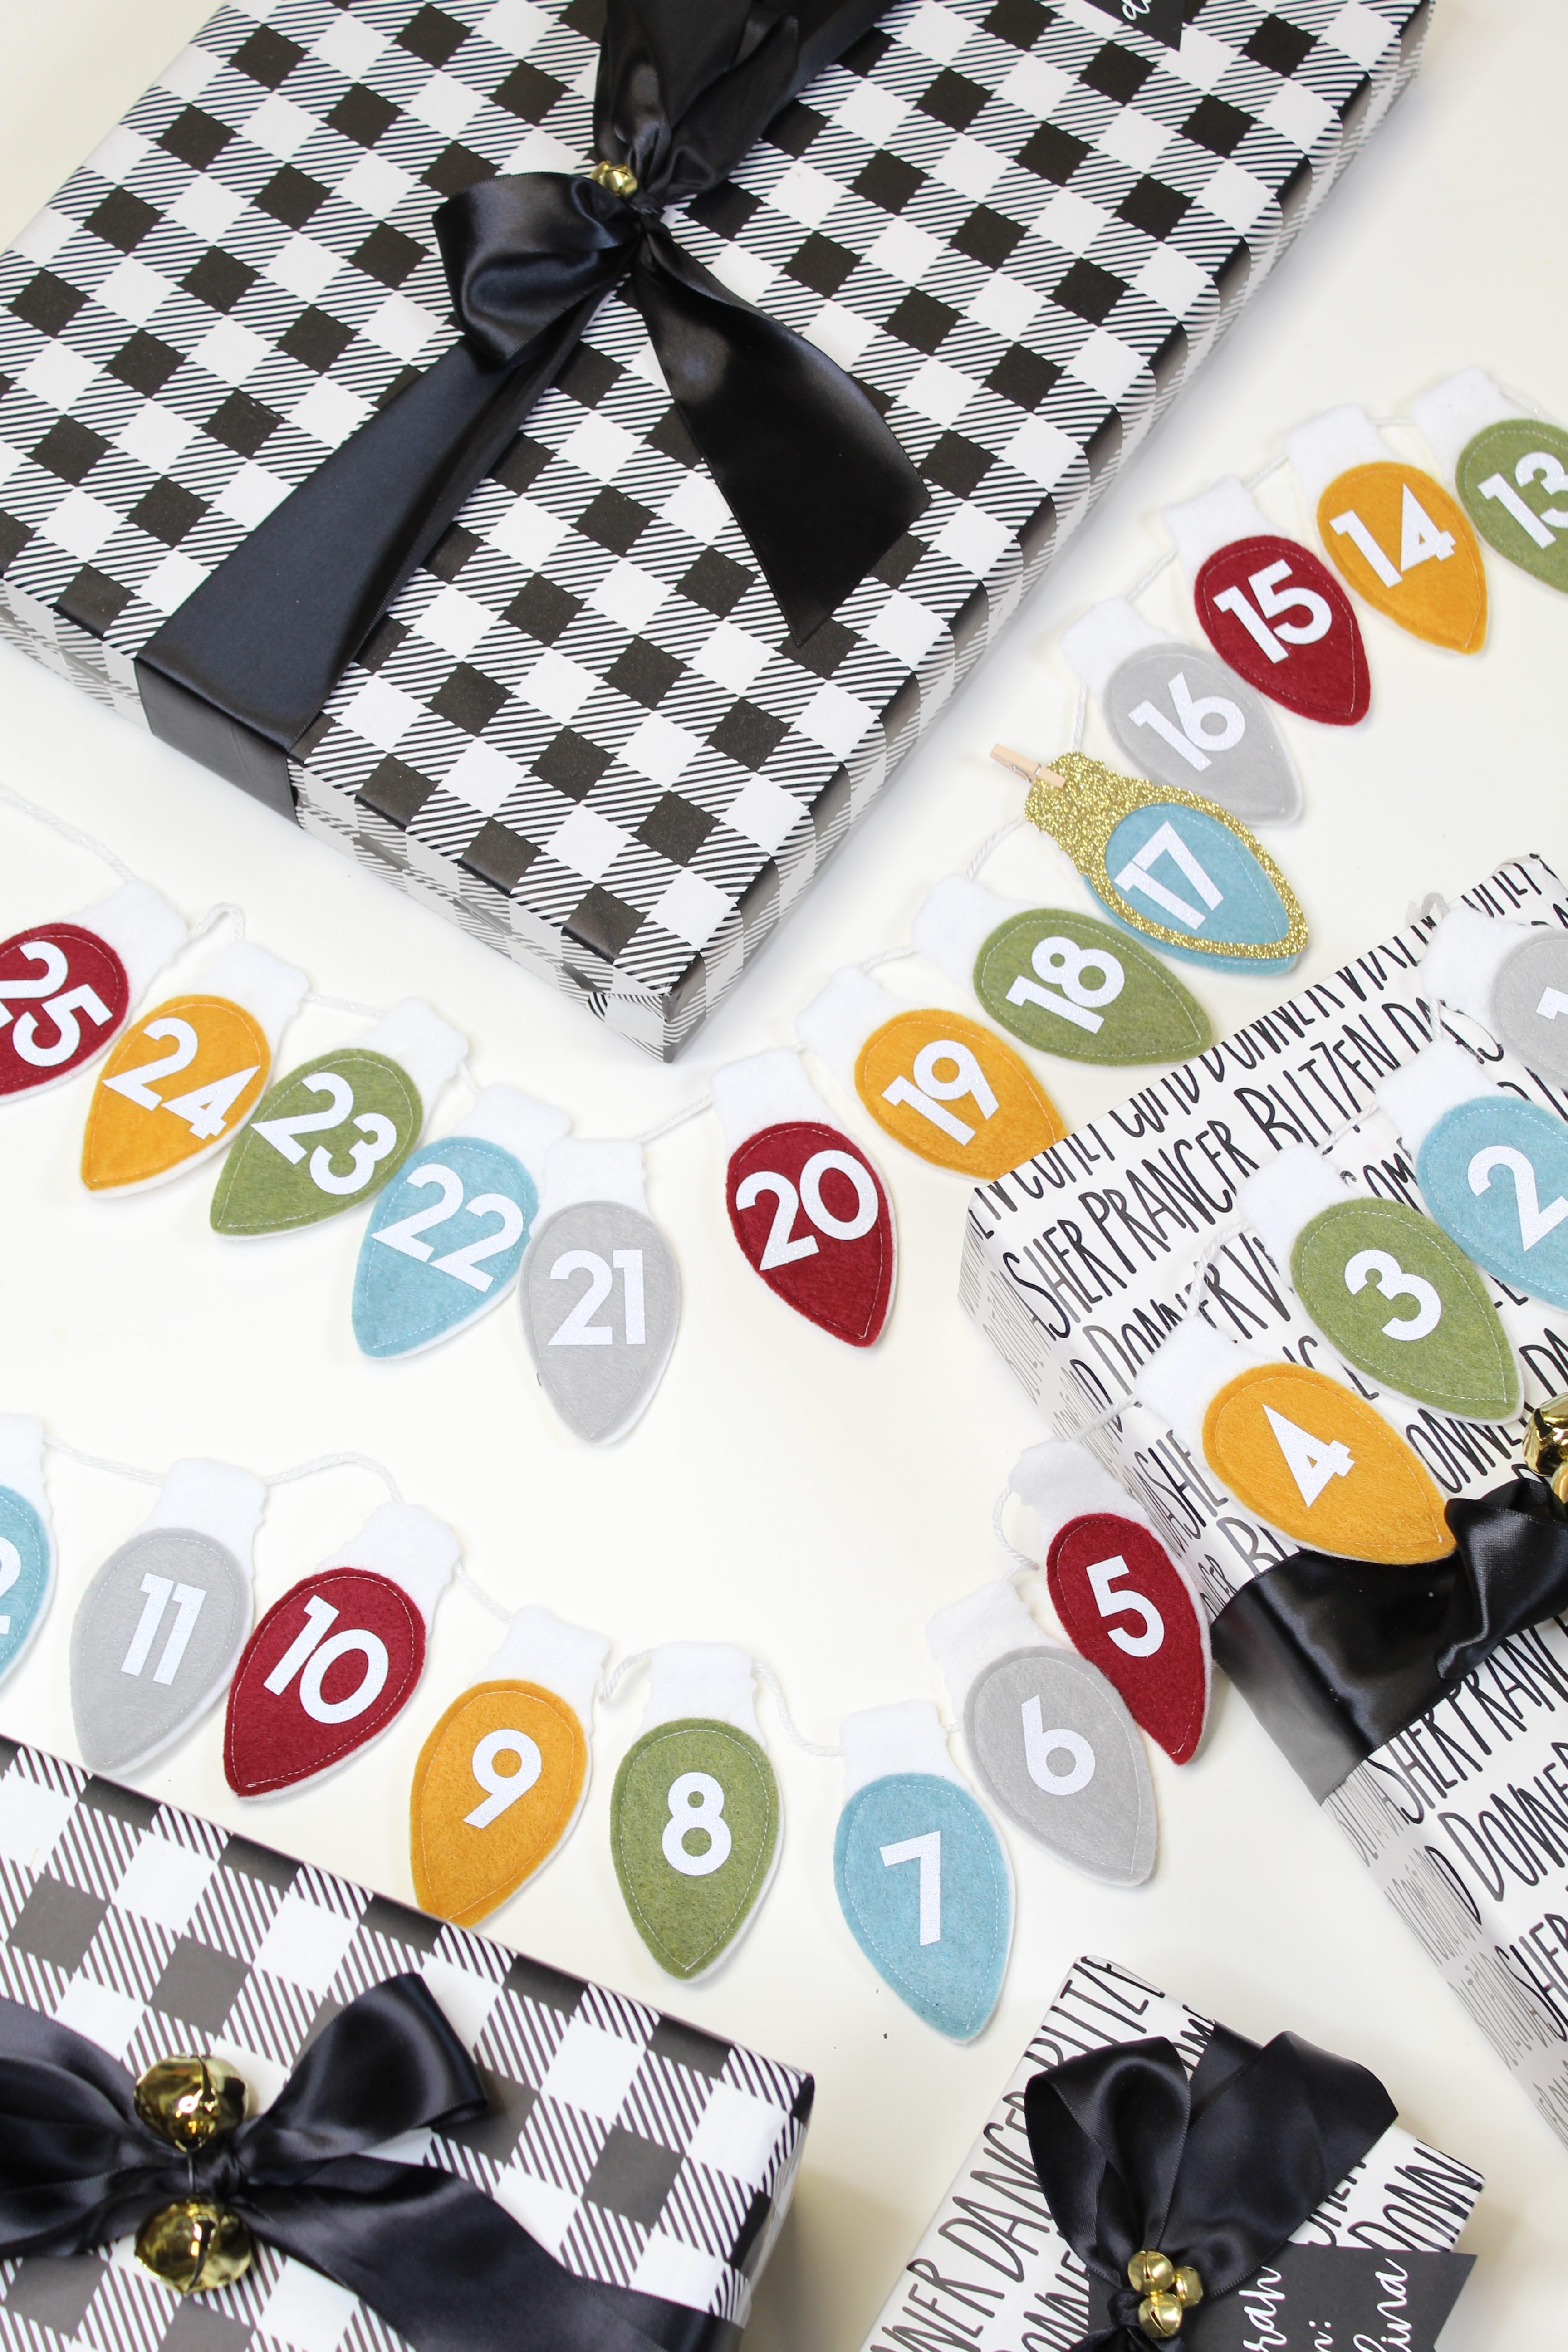 Get in the holiday spirit with this DIY felt advent banner!